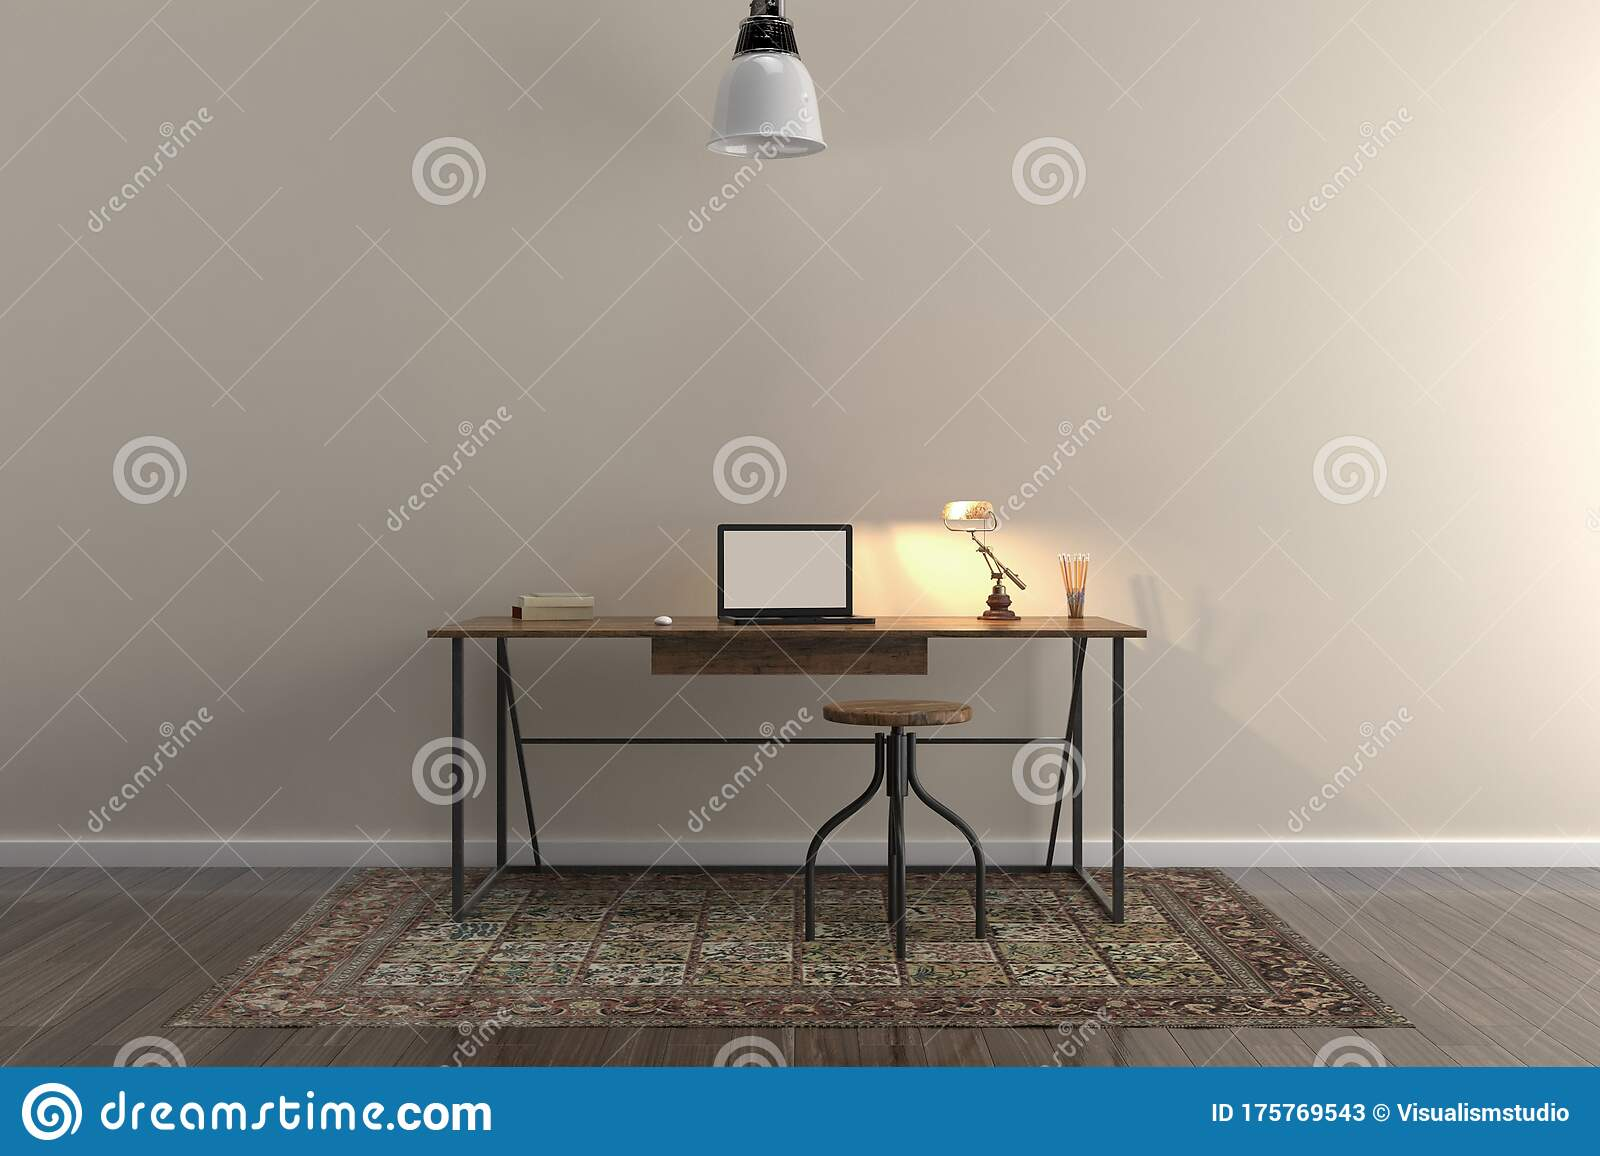 Picture of: Wall Bed And Chair Modern Mid Century Bedside Table And White Bed On White Wall Background Stock Image Image Of Contemporary Comfortable 175769543